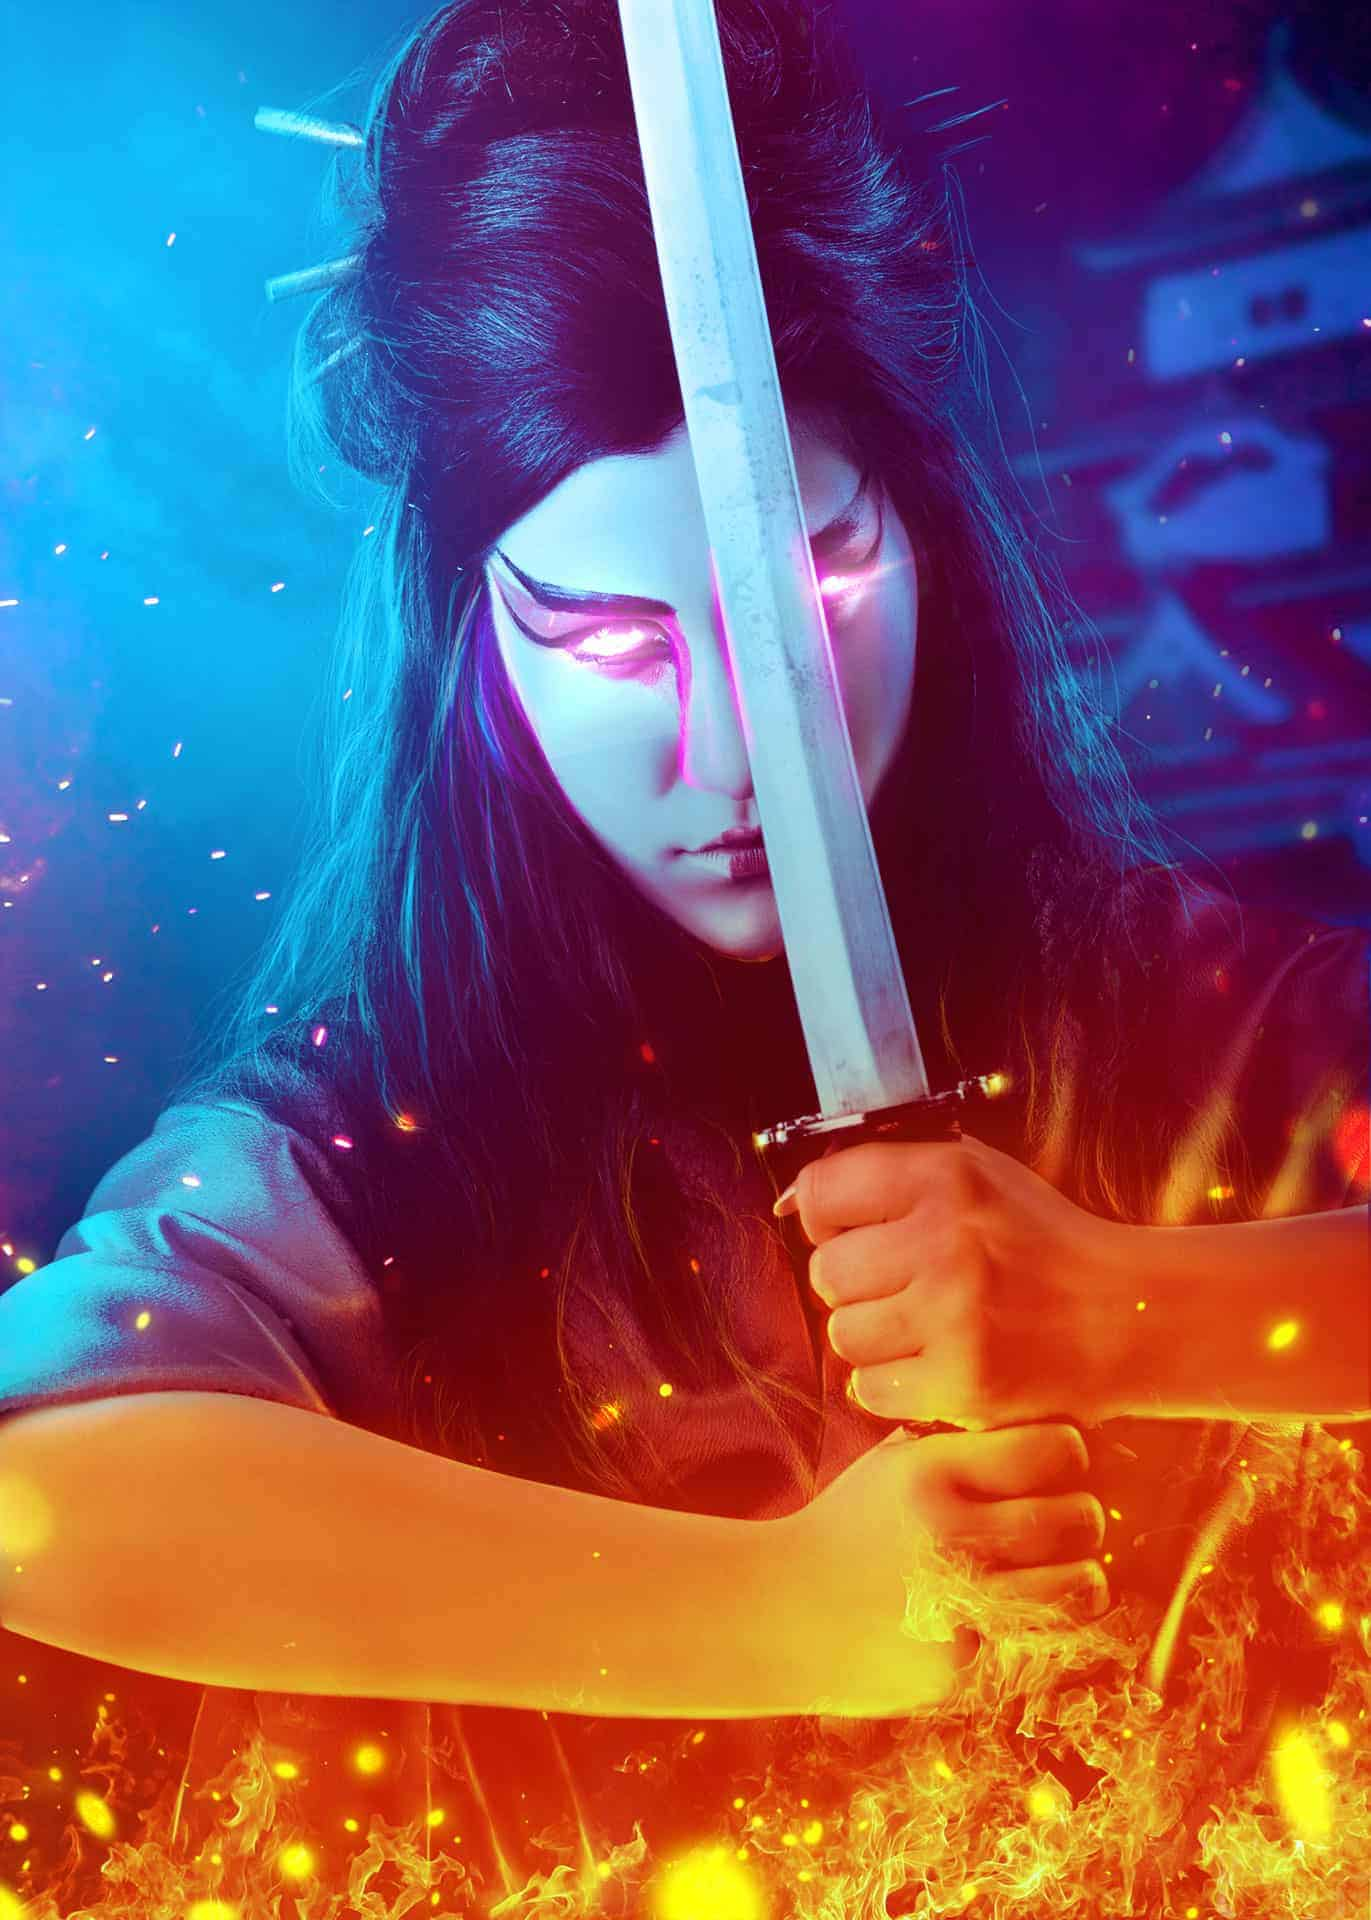 How to Create a Samurai Photo Manipulation with Photoshop